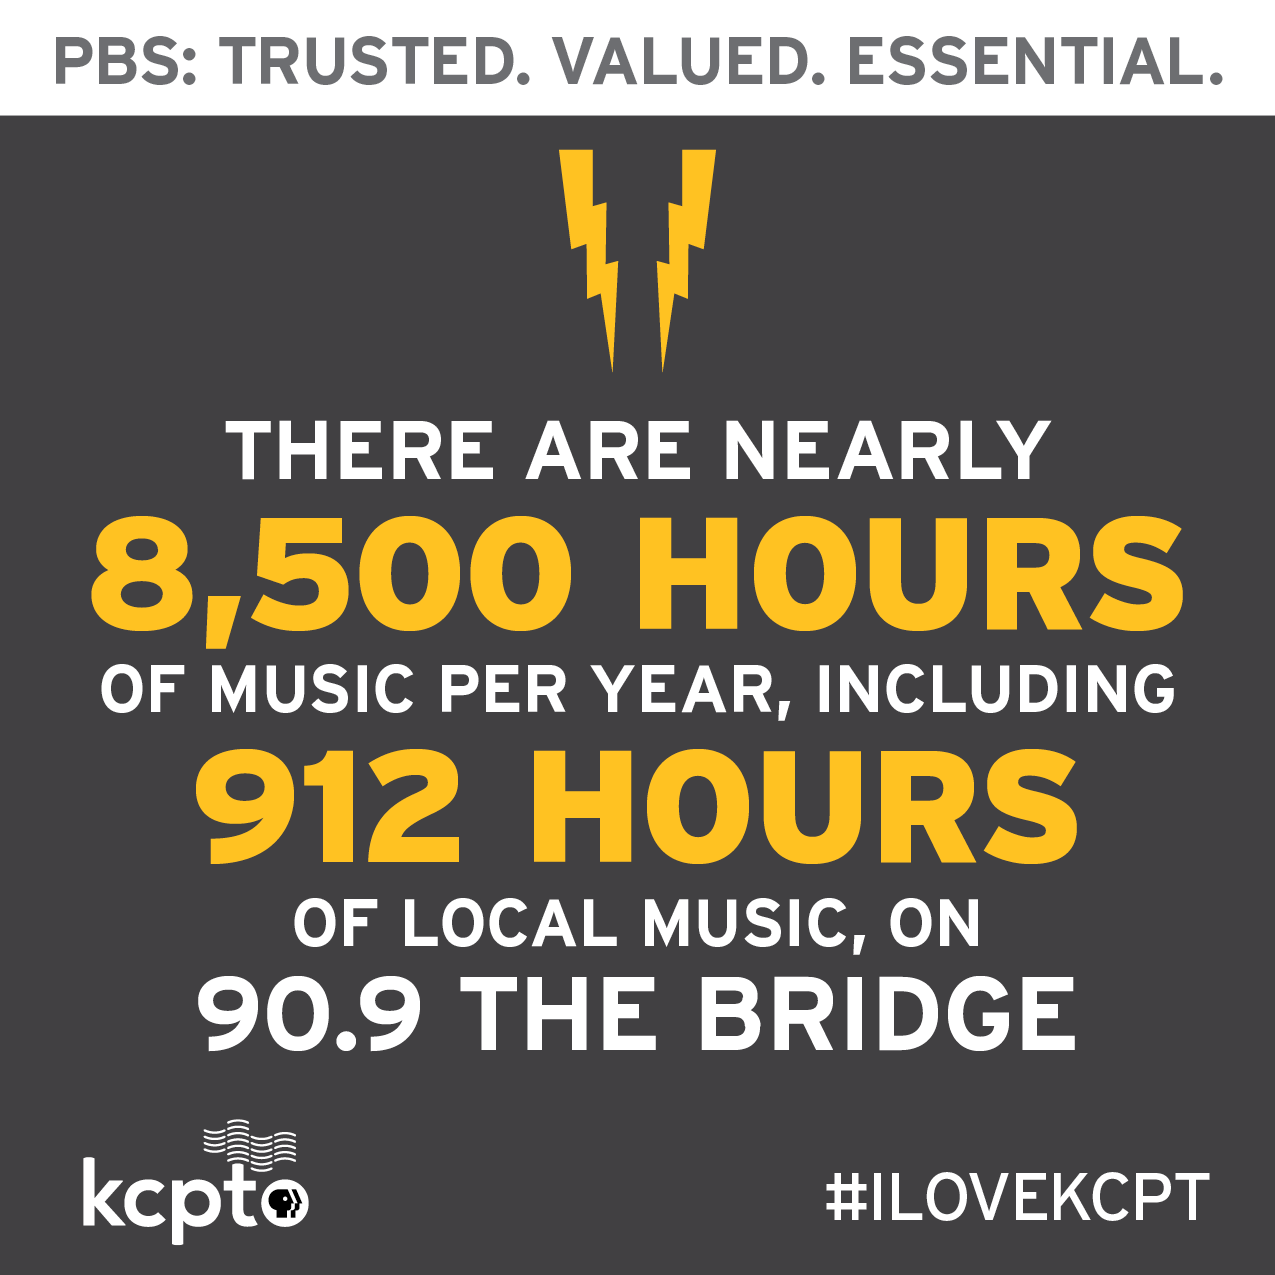 90.9 the Bridge plays over 8,500 hours of music a year and 912 hours of local music.